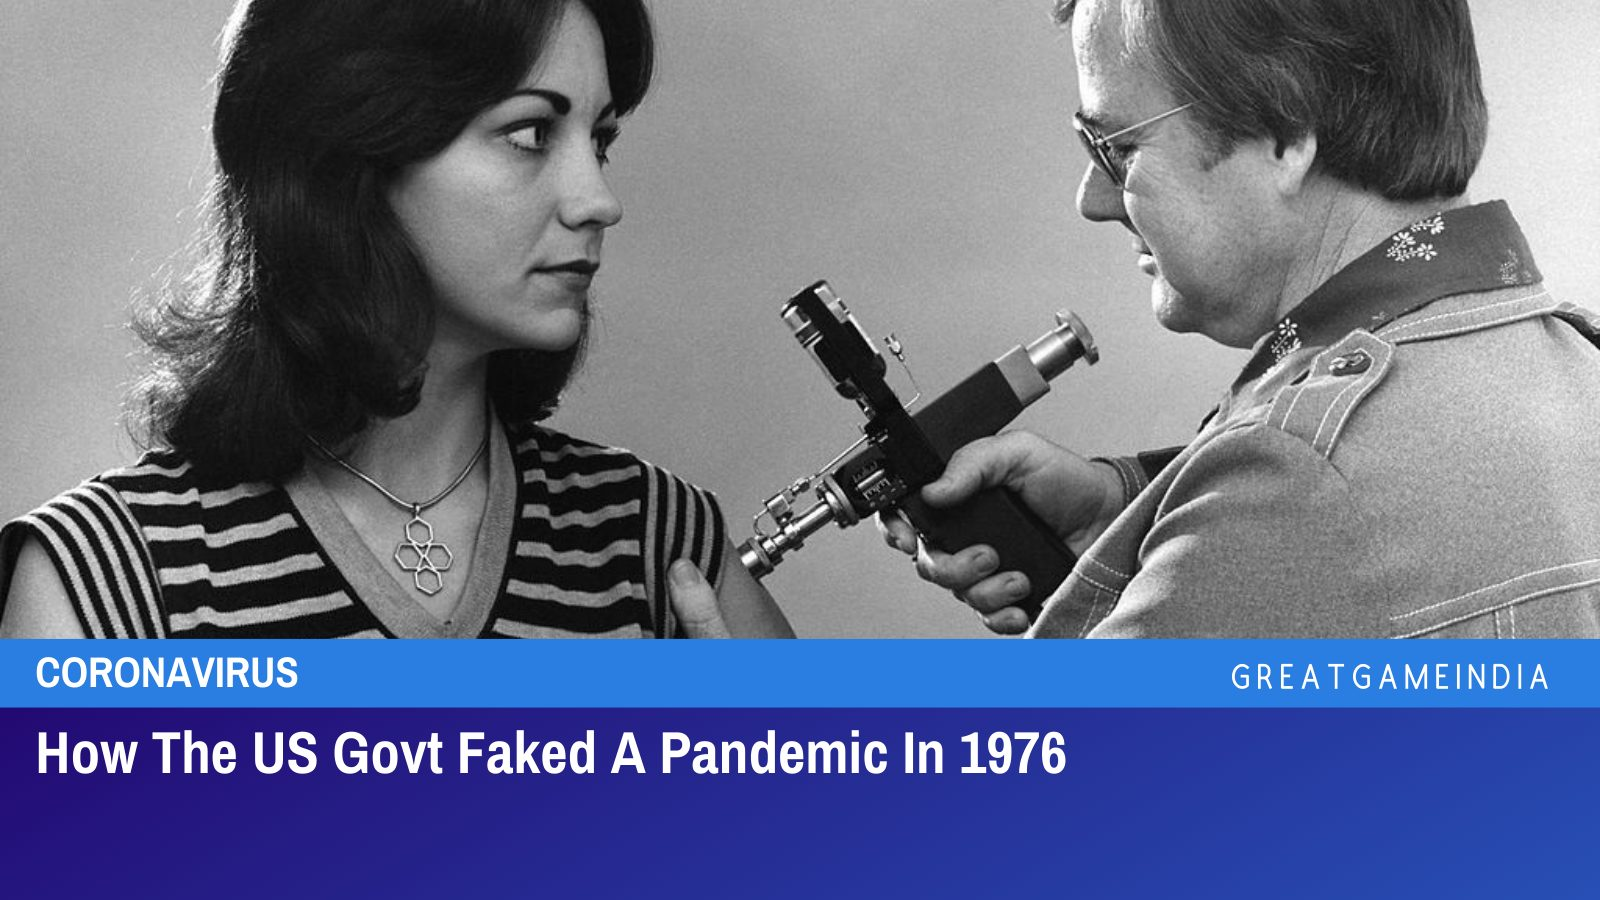 How The US Govt Faked A Pandemic In 1976